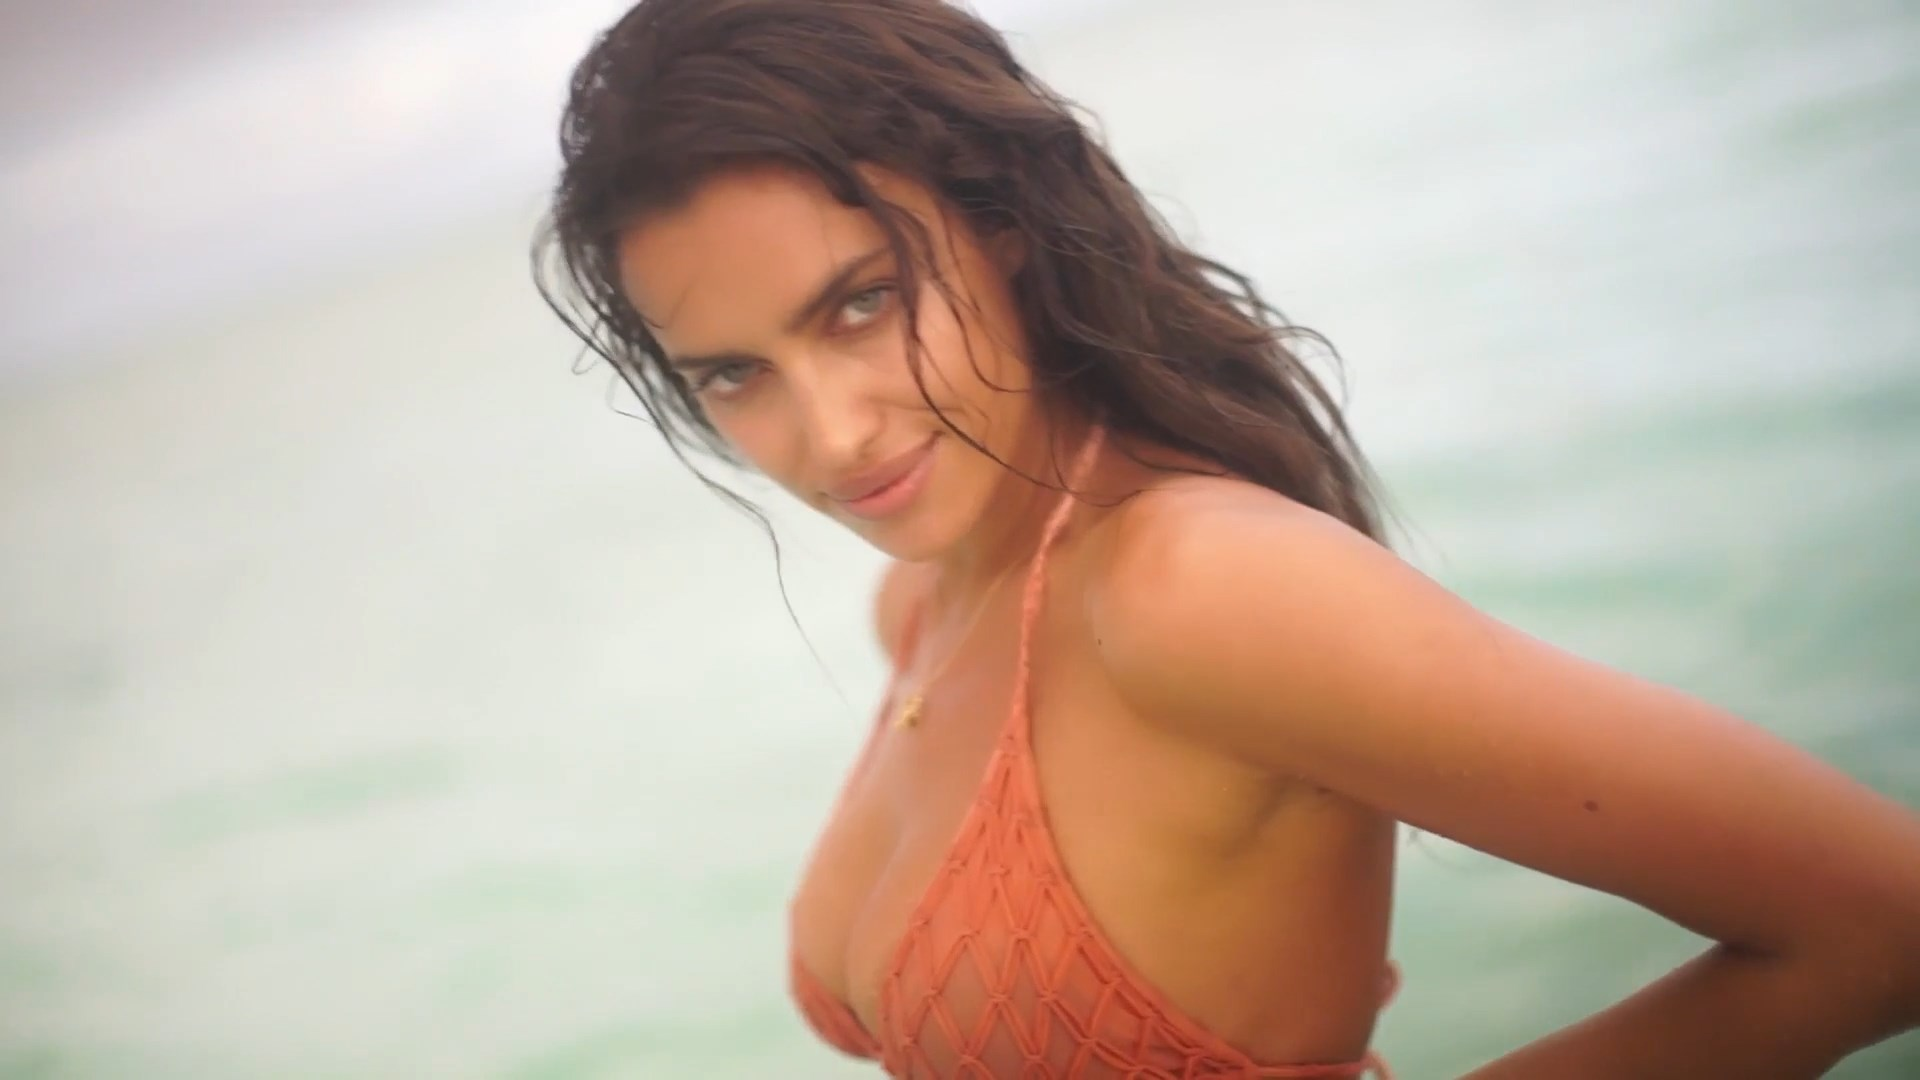 Irina Shayk nude boobs